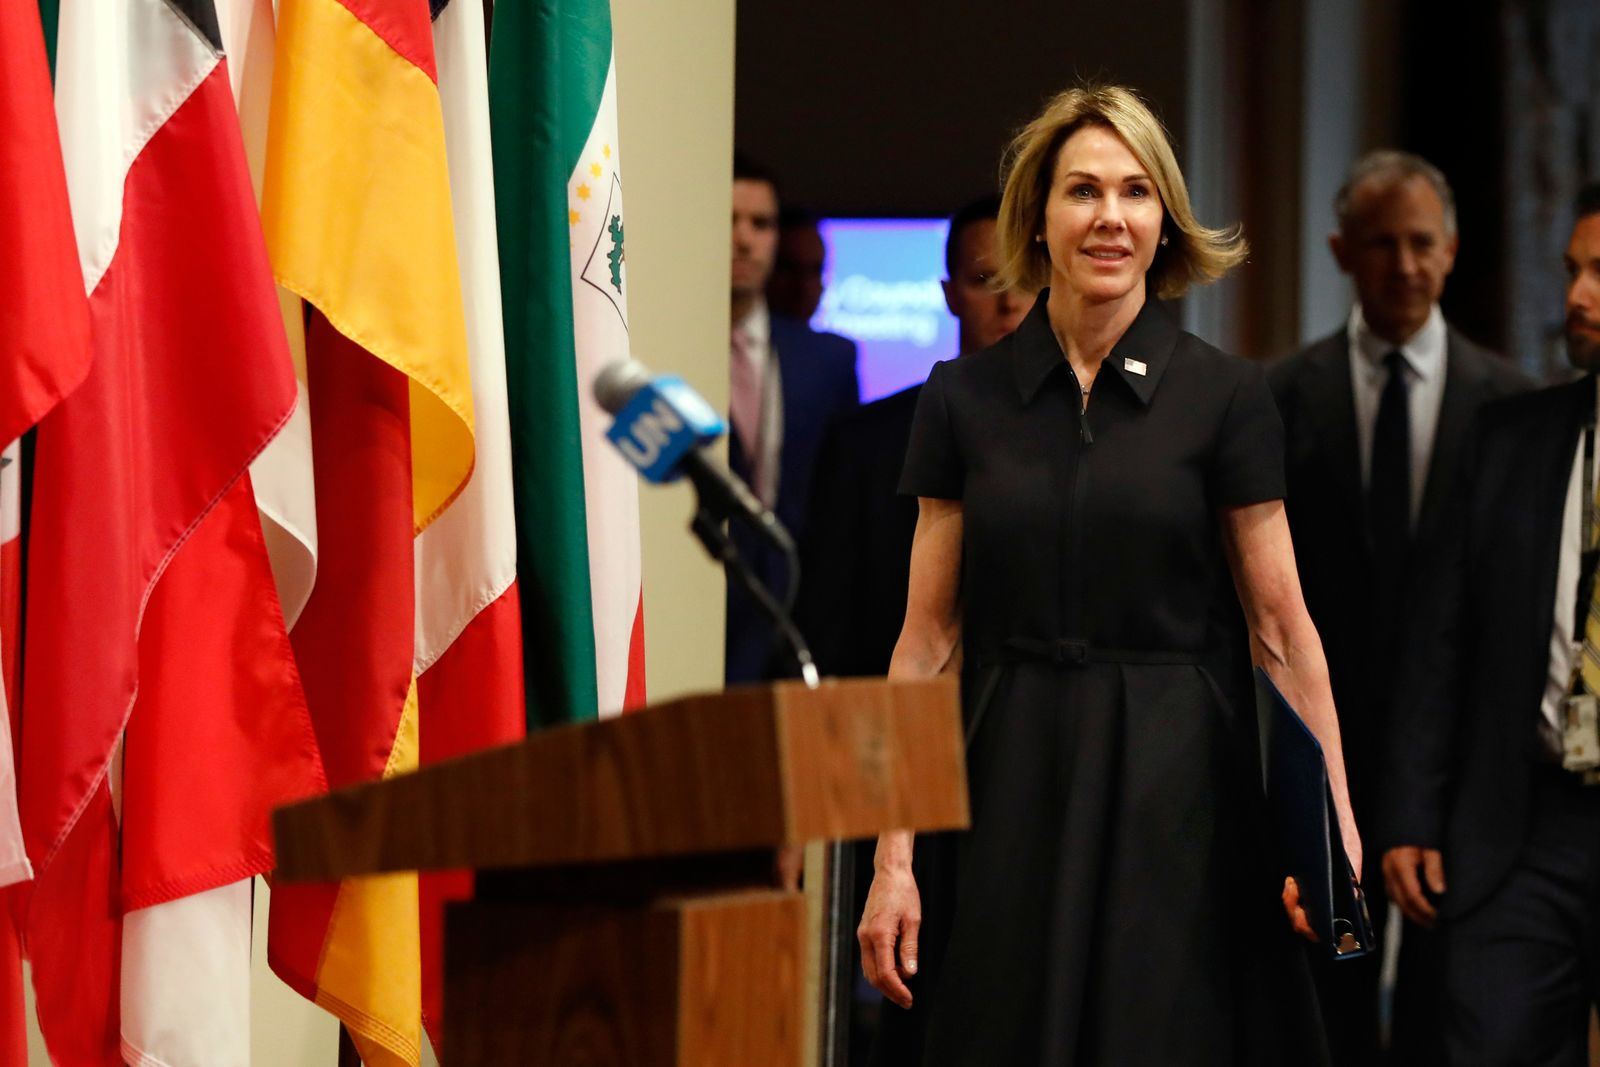 New U.S. Ambassador Kelly Craft walks to the podium to address the press after attending her first Security Council meeting, at United Nations headquarters, Thursday, Sept. 12, 2019. (AP Photo/Richard Drew)